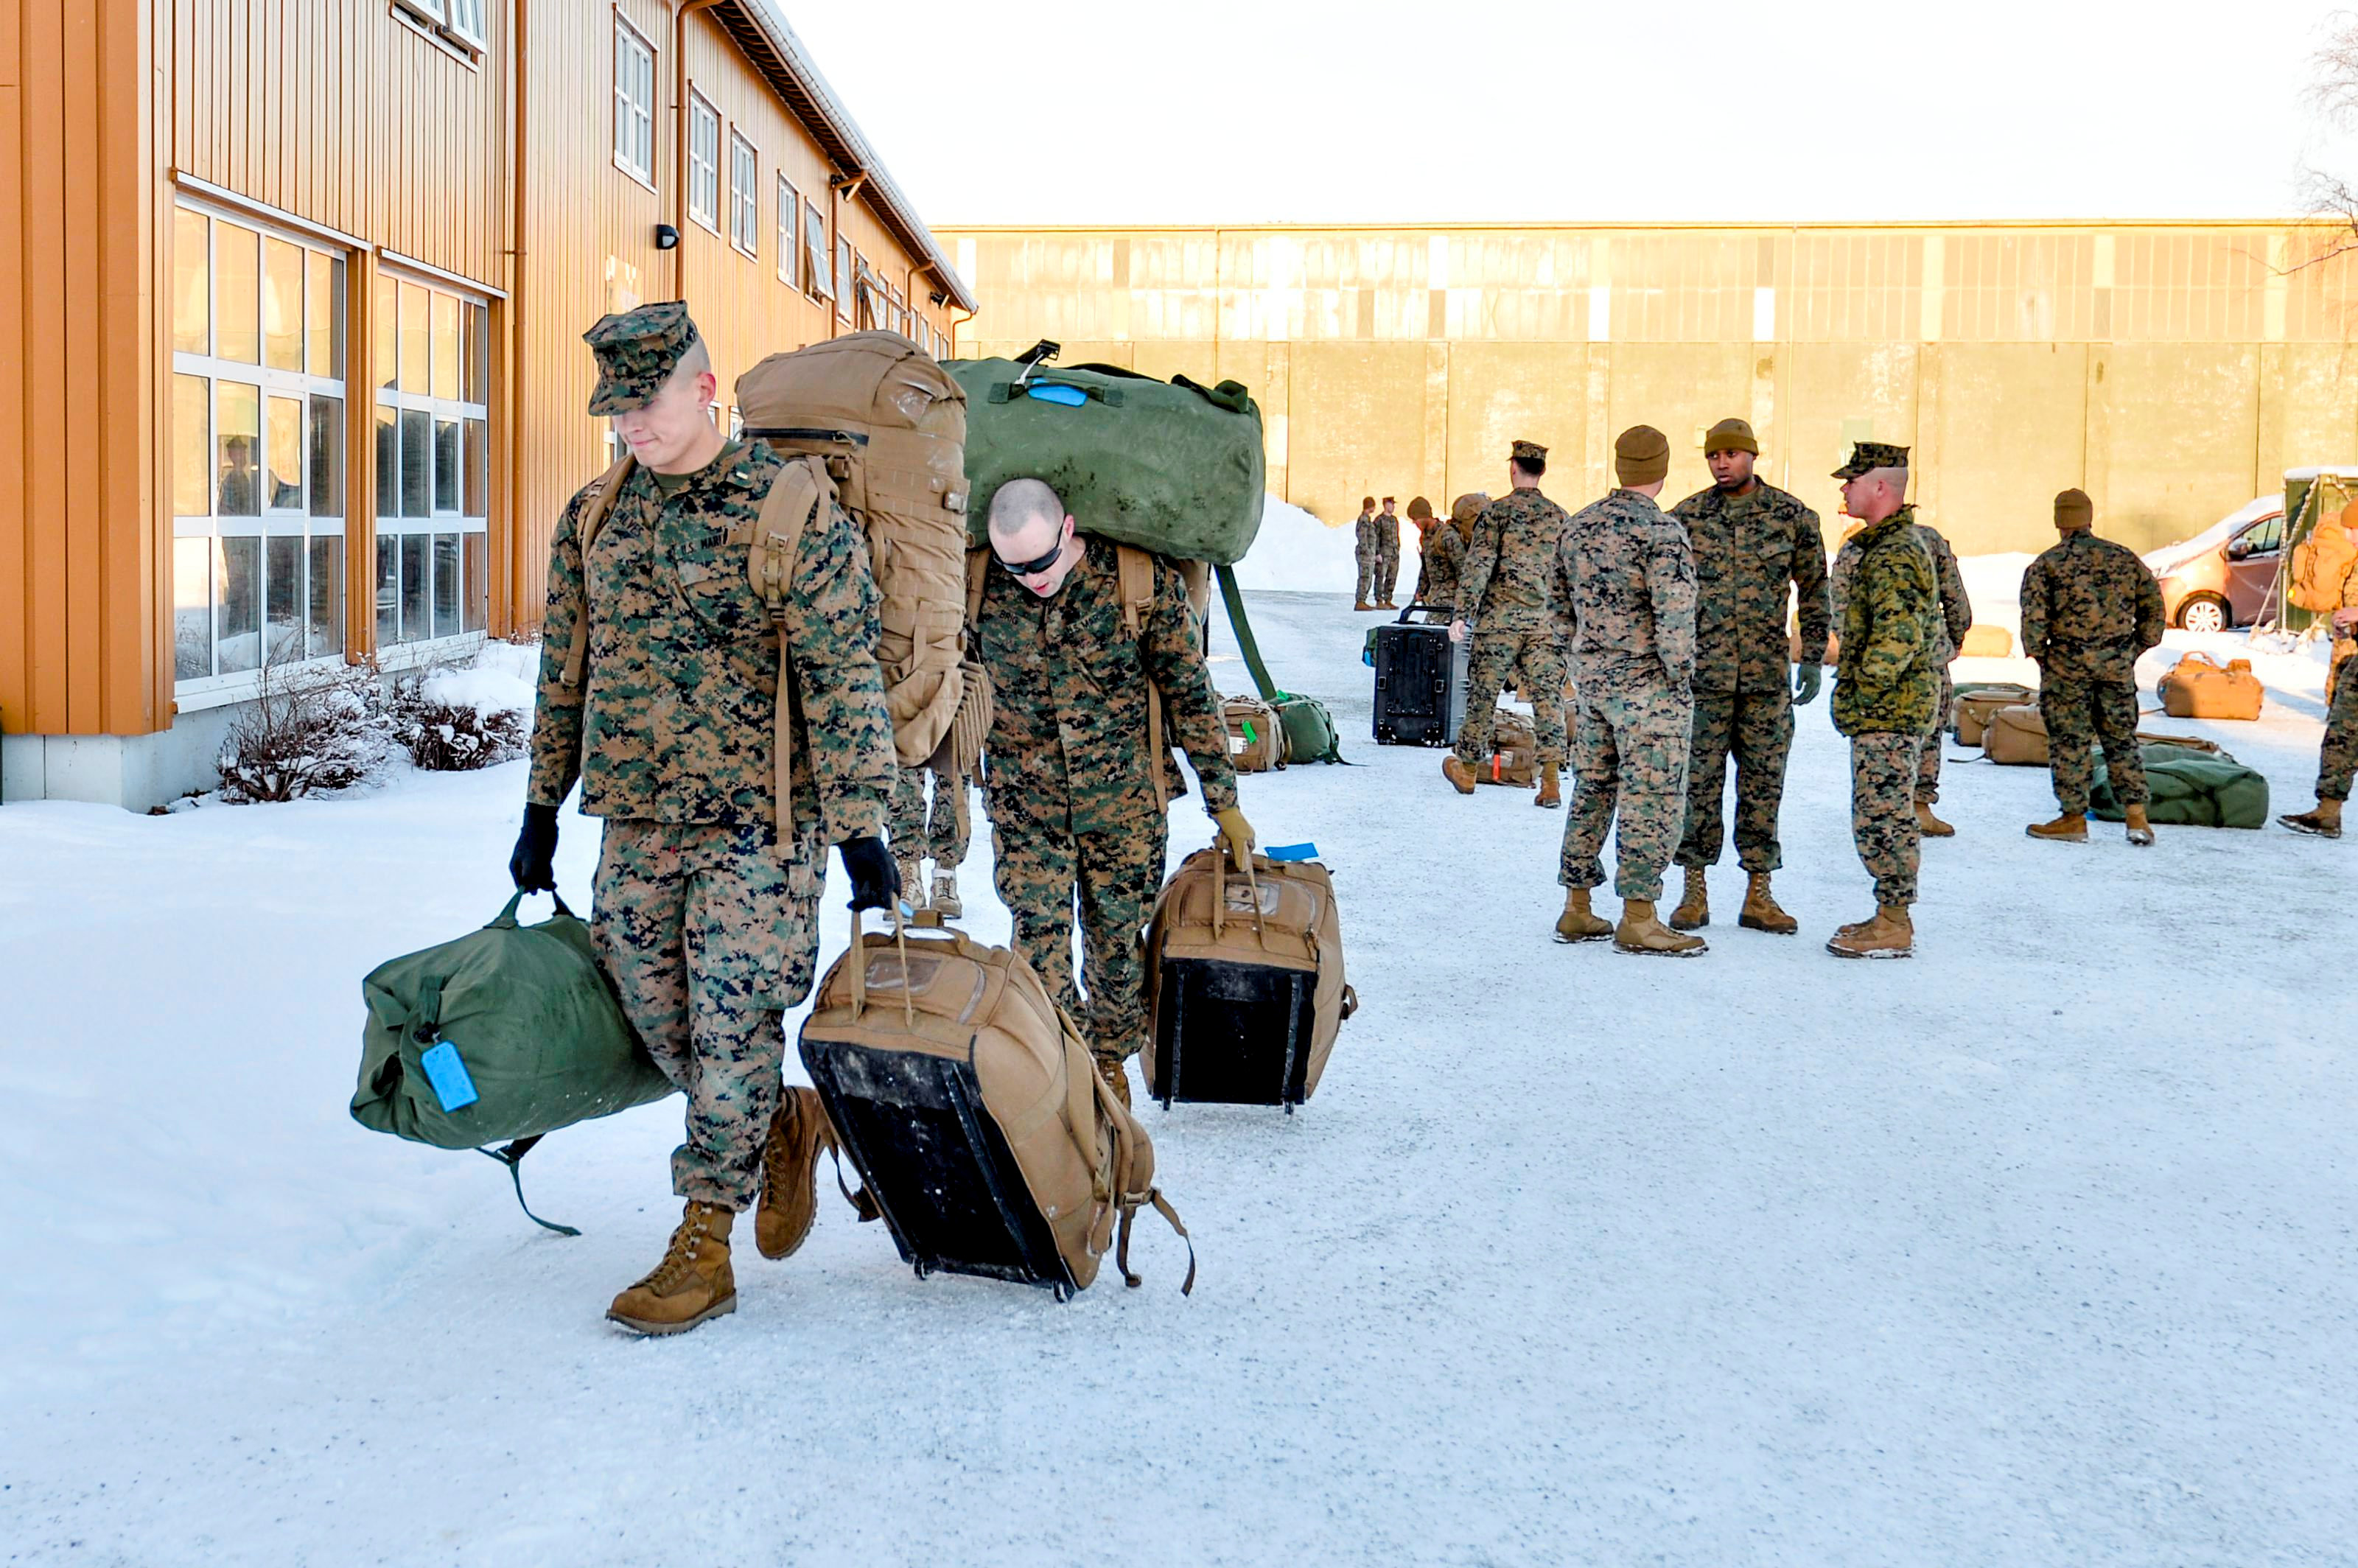 U.S. Marines, who are to attend a six-month training to learn about winter warfare, arrive in Stjordal, Norway January 16, 2017. NTB Scanpix/Ned Alley/via REUTERS ATTENTION EDITORS - THIS IMAGE WAS PROVIDED BY A THIRD PARTY. FOR EDITORIAL USE ONLY. NOT FOR SALE FOR MARKETING OR ADVERTISING CAMPAIGNS. THIS PICTURE IS DISTRIBUTED EXACTLY AS RECEIVED BY REUTERS, AS A SERVICE TO CLIENTS. NORWAY OUT. NO COMMERCIAL OR EDITORIAL SALES IN NORWAY. NO COMMERCIAL SALES.